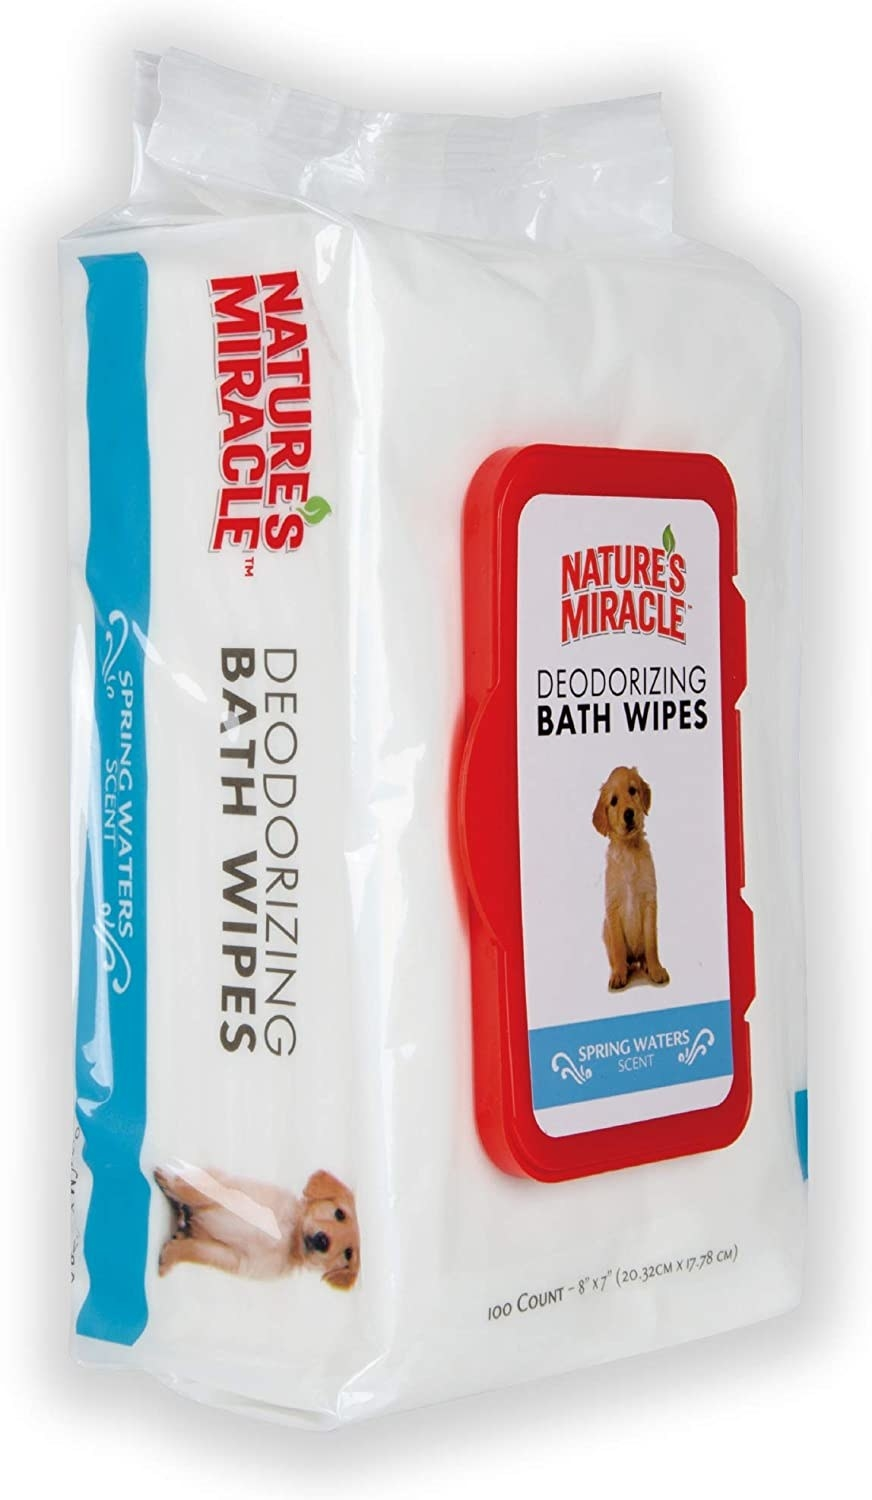 A pack of deodorizing bath wipes.